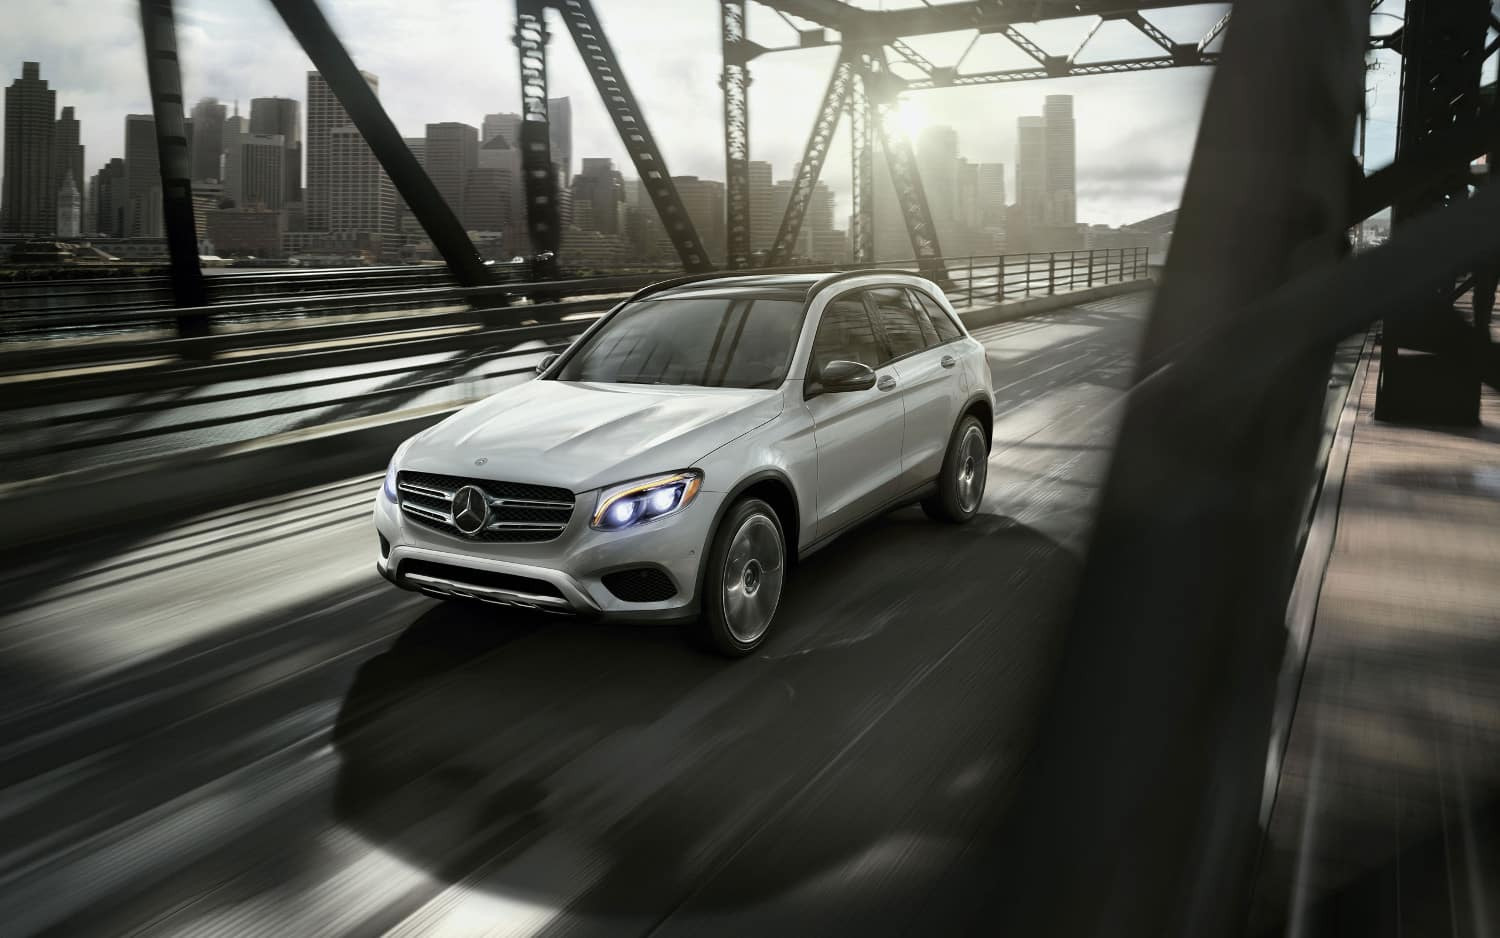 Mercedes Benz Luxury Hybrid Cars Suvs Northbrook Il